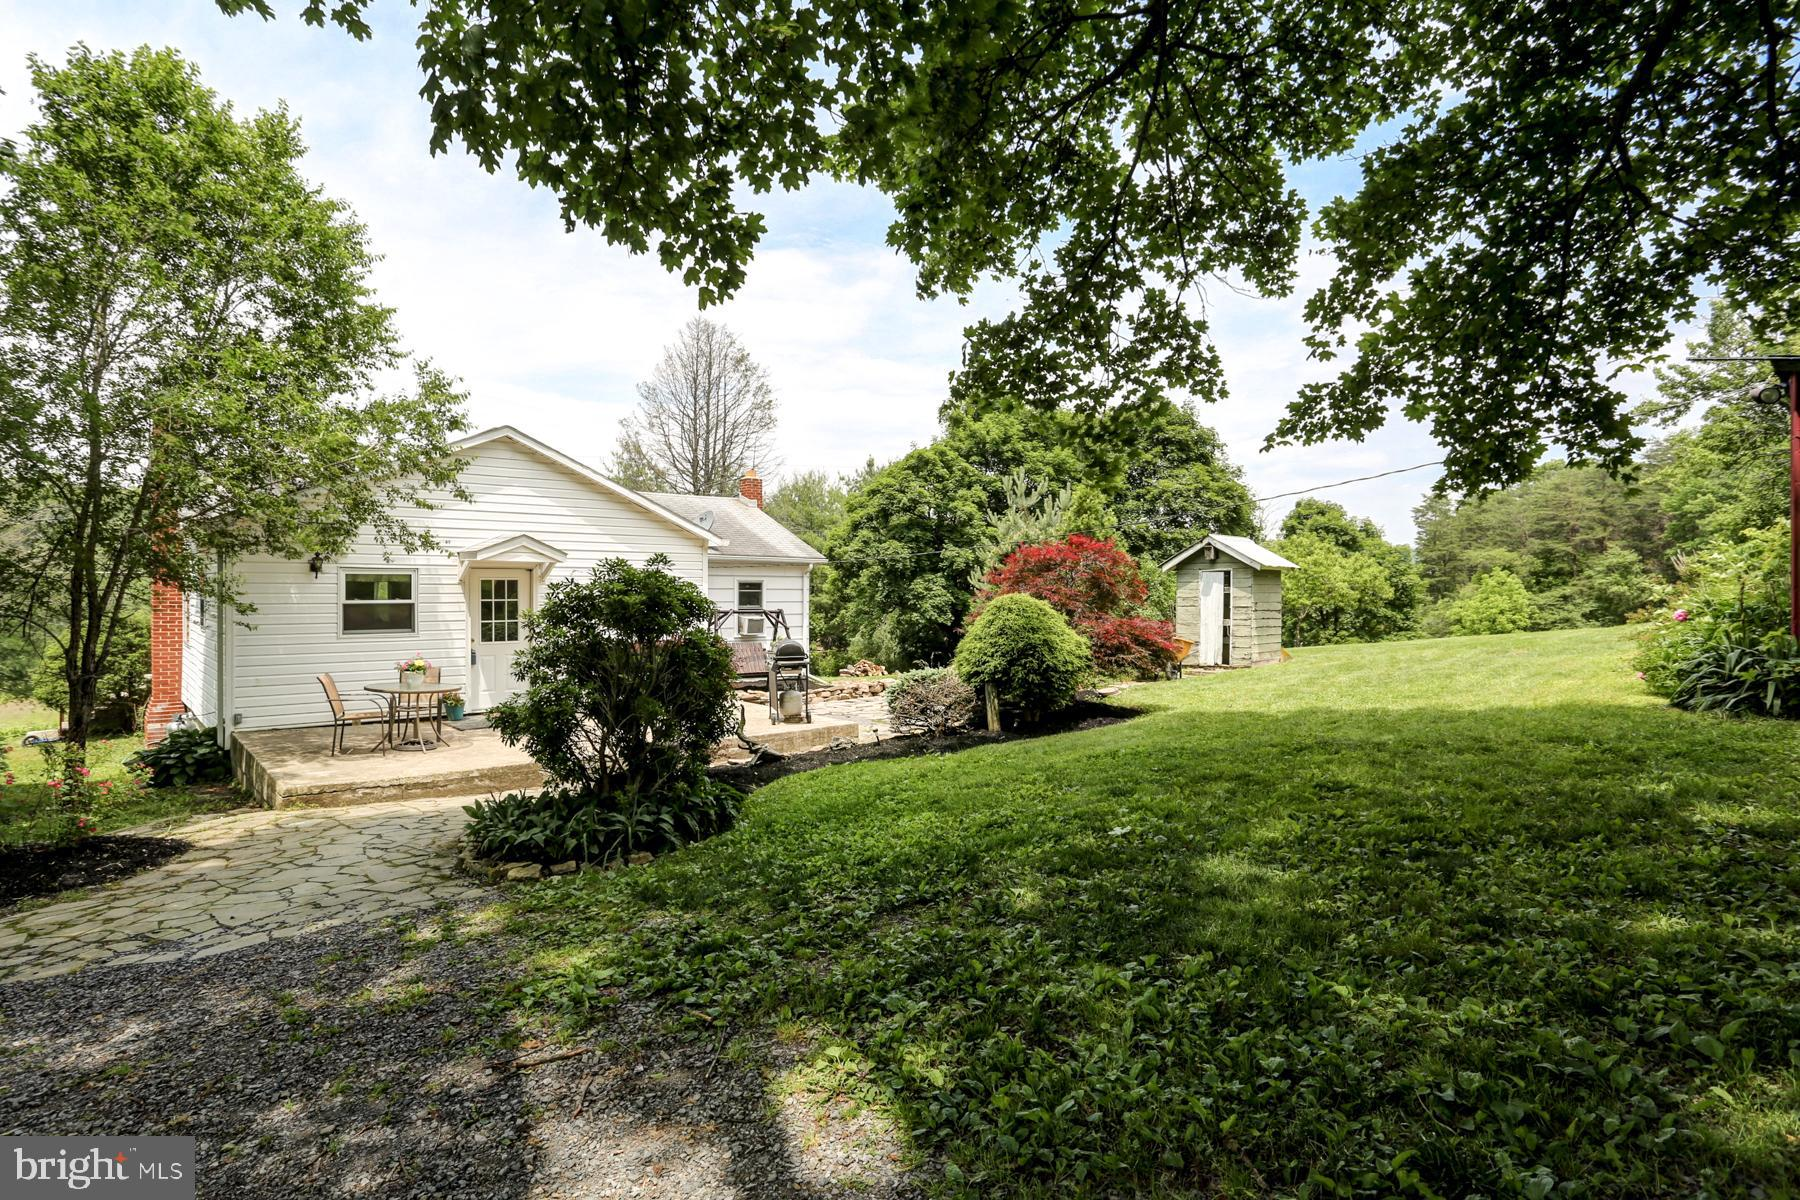 987 PARADISE ROAD, NEW BLOOMFIELD, PA 17068